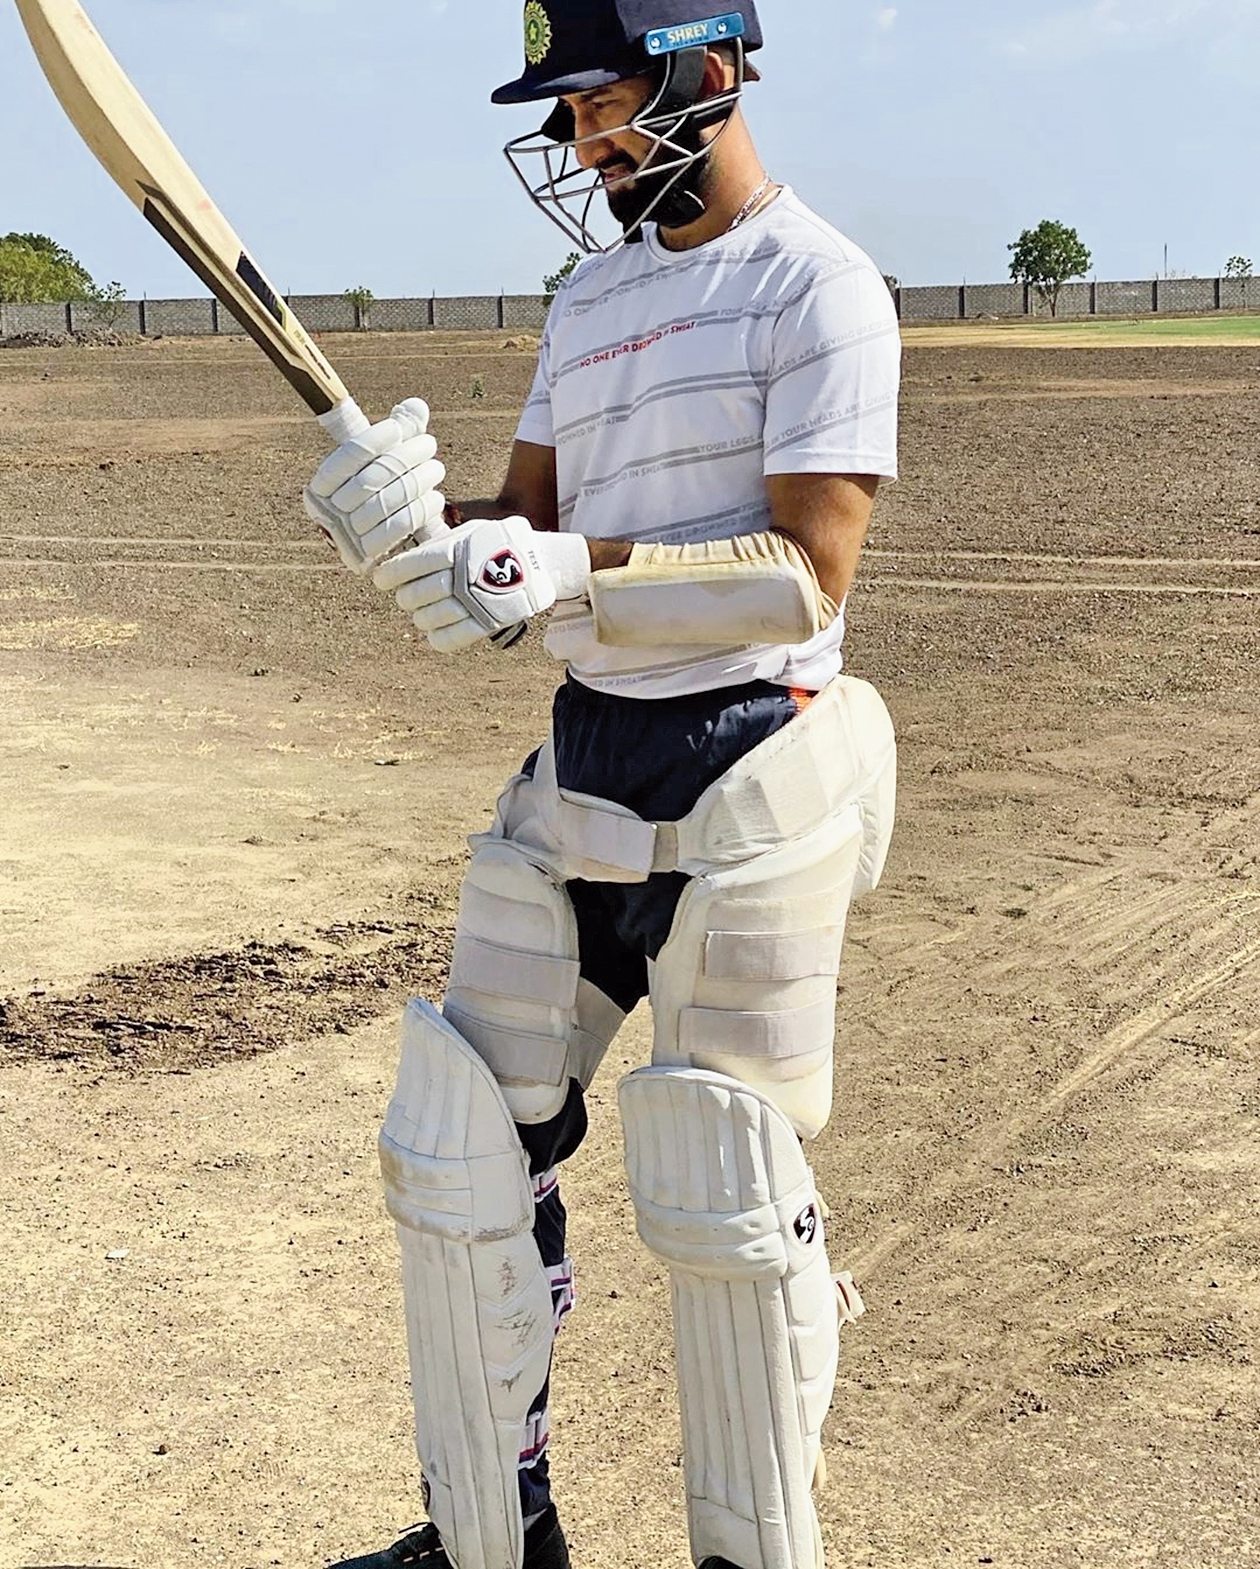 """India Test batsman Cheteshwar Pujara at nets at his academy on the outskirts of Rajkot on Monday. """"Back at it...felt like a long time away but just as i took the stance felt as if it was yesterday,"""" he wrote on Instagram. Instrumental in Saurashtra's maiden Ranji triumph earlier in the year, Pujara trained alongside the team's skipper Jaydev Unadkat as well as other players. Pujara's next international stint would most likely be the Australia tour in December."""